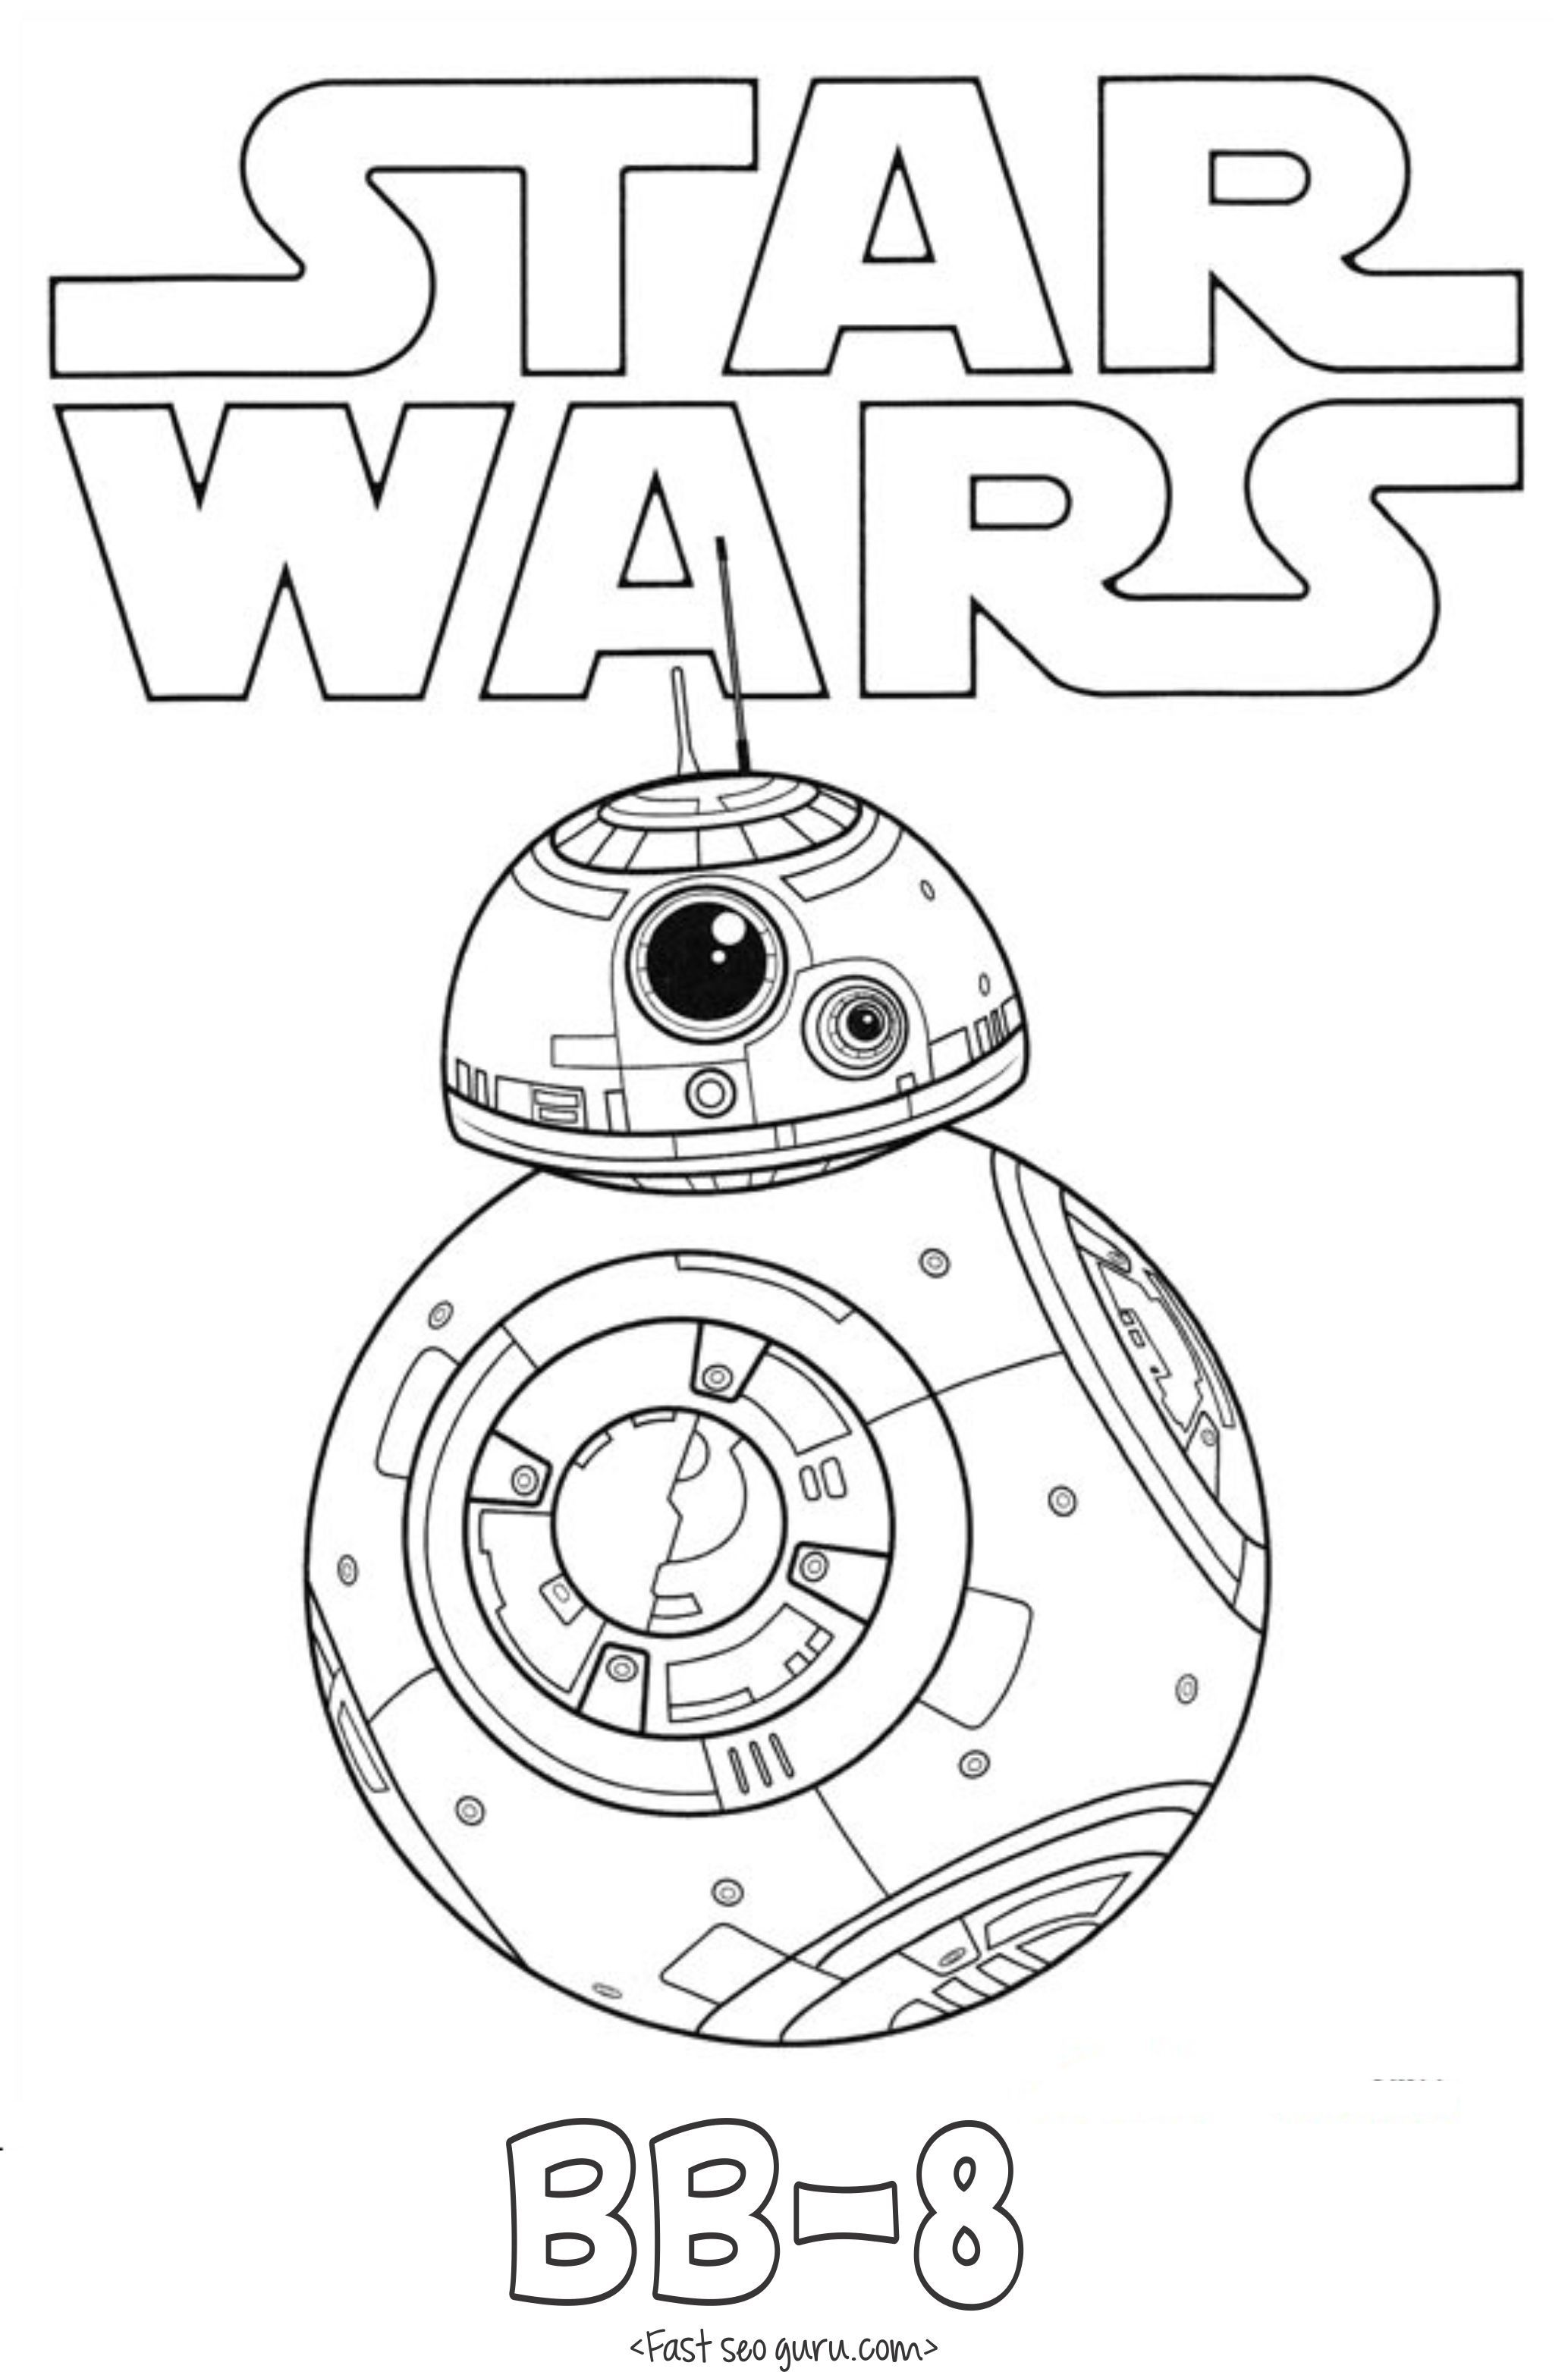 Bb8 Star Wars Gifts 2019 In 2020 Star Wars Coloring Book Star